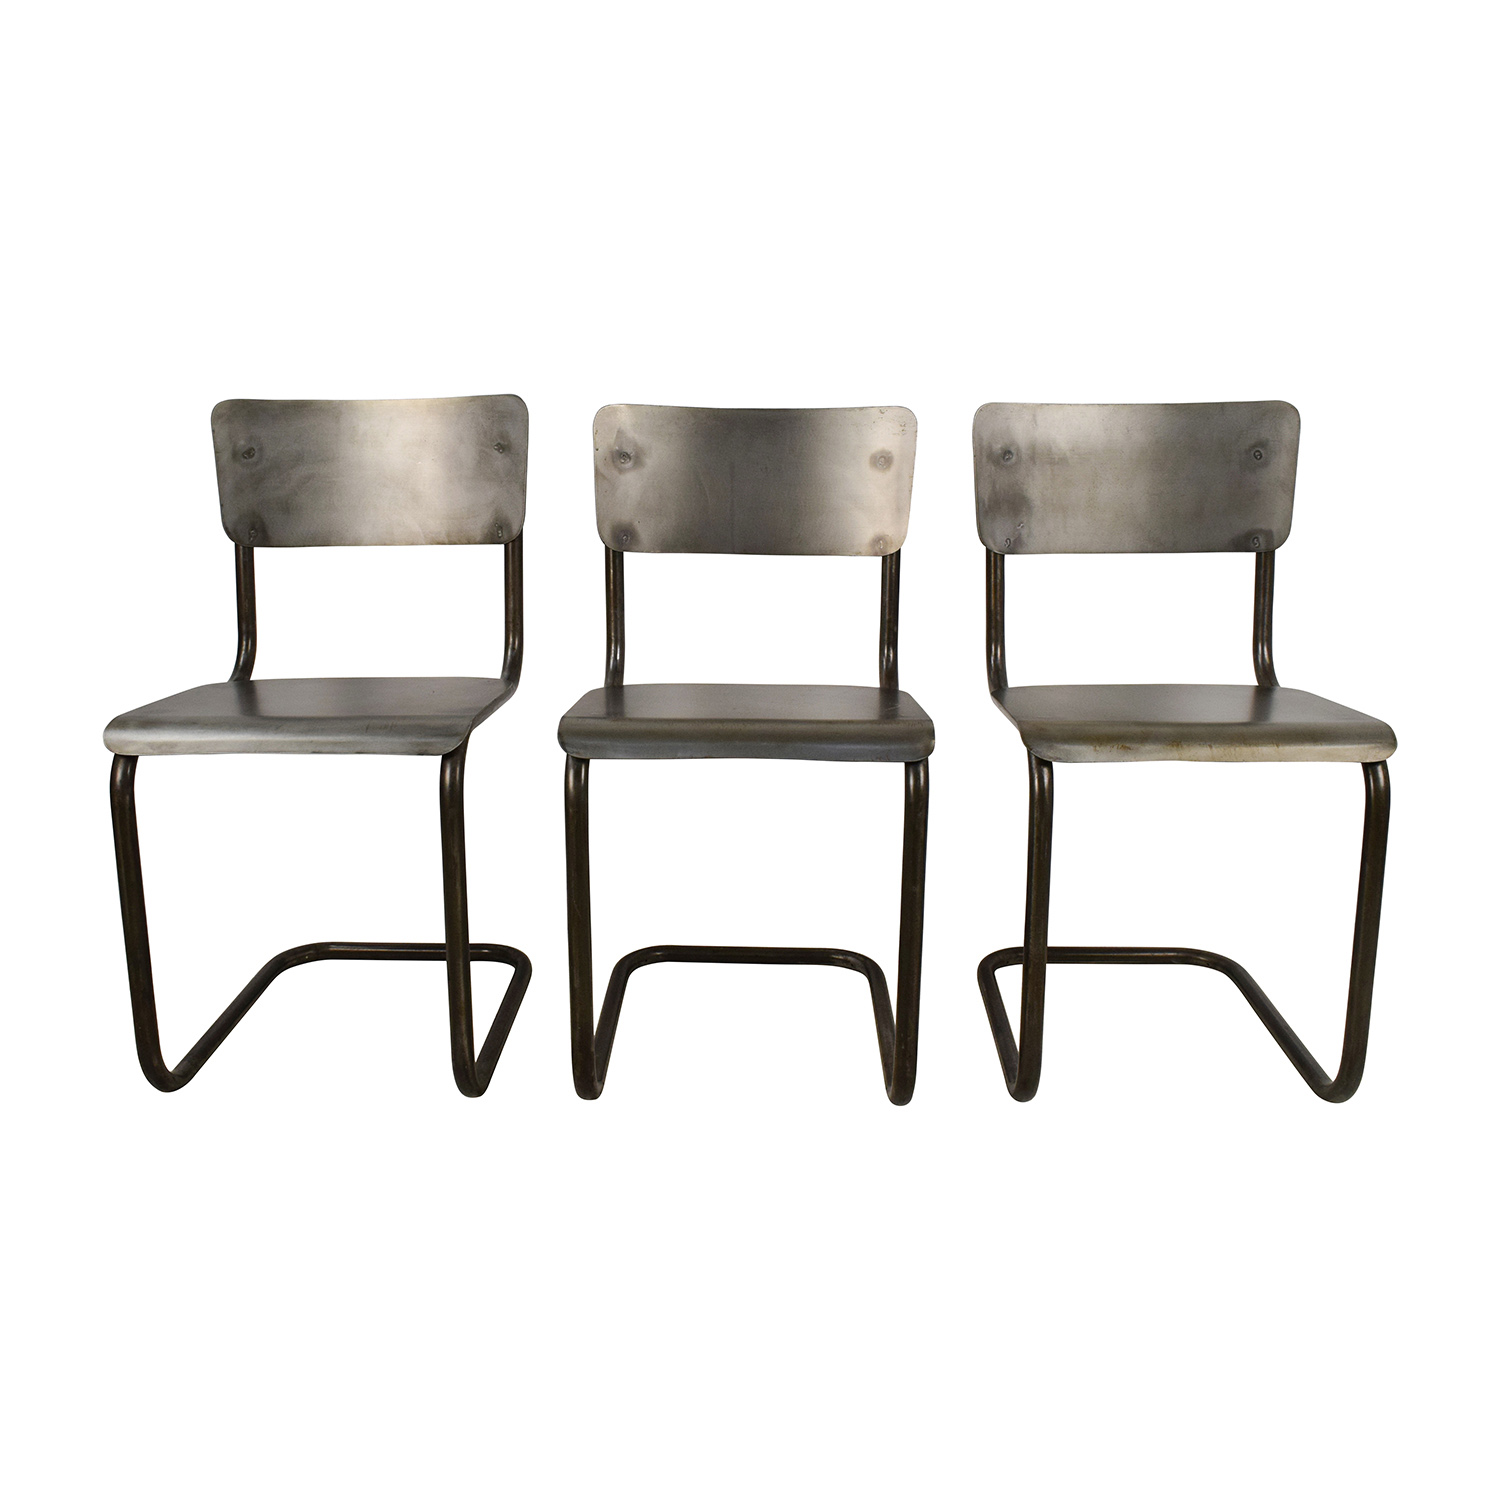 Industrial Style Metal Chair Set Dining Chairs